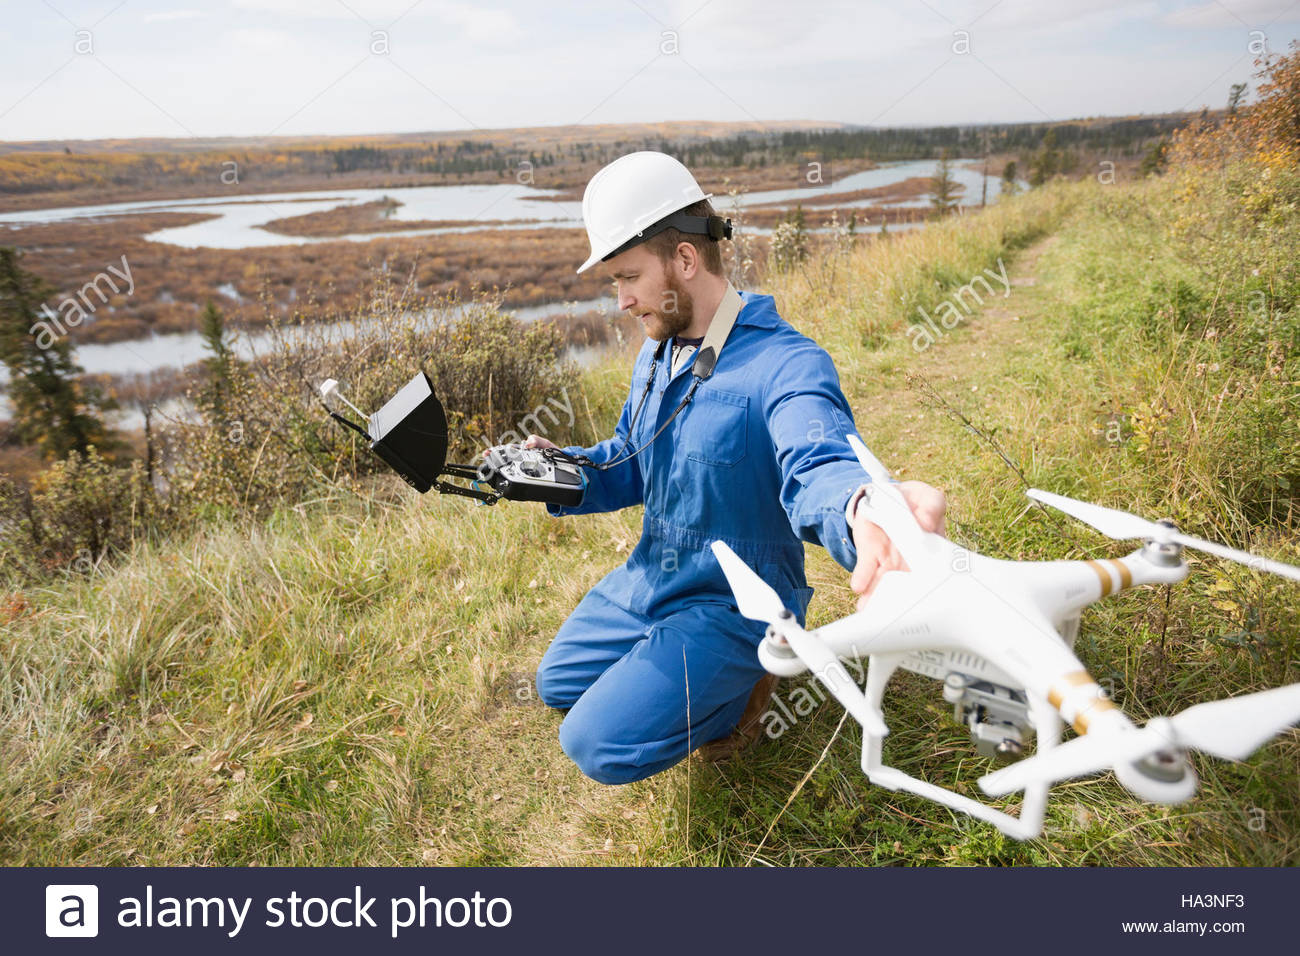 Surveyor with drone equipment on hillside - Stock Image